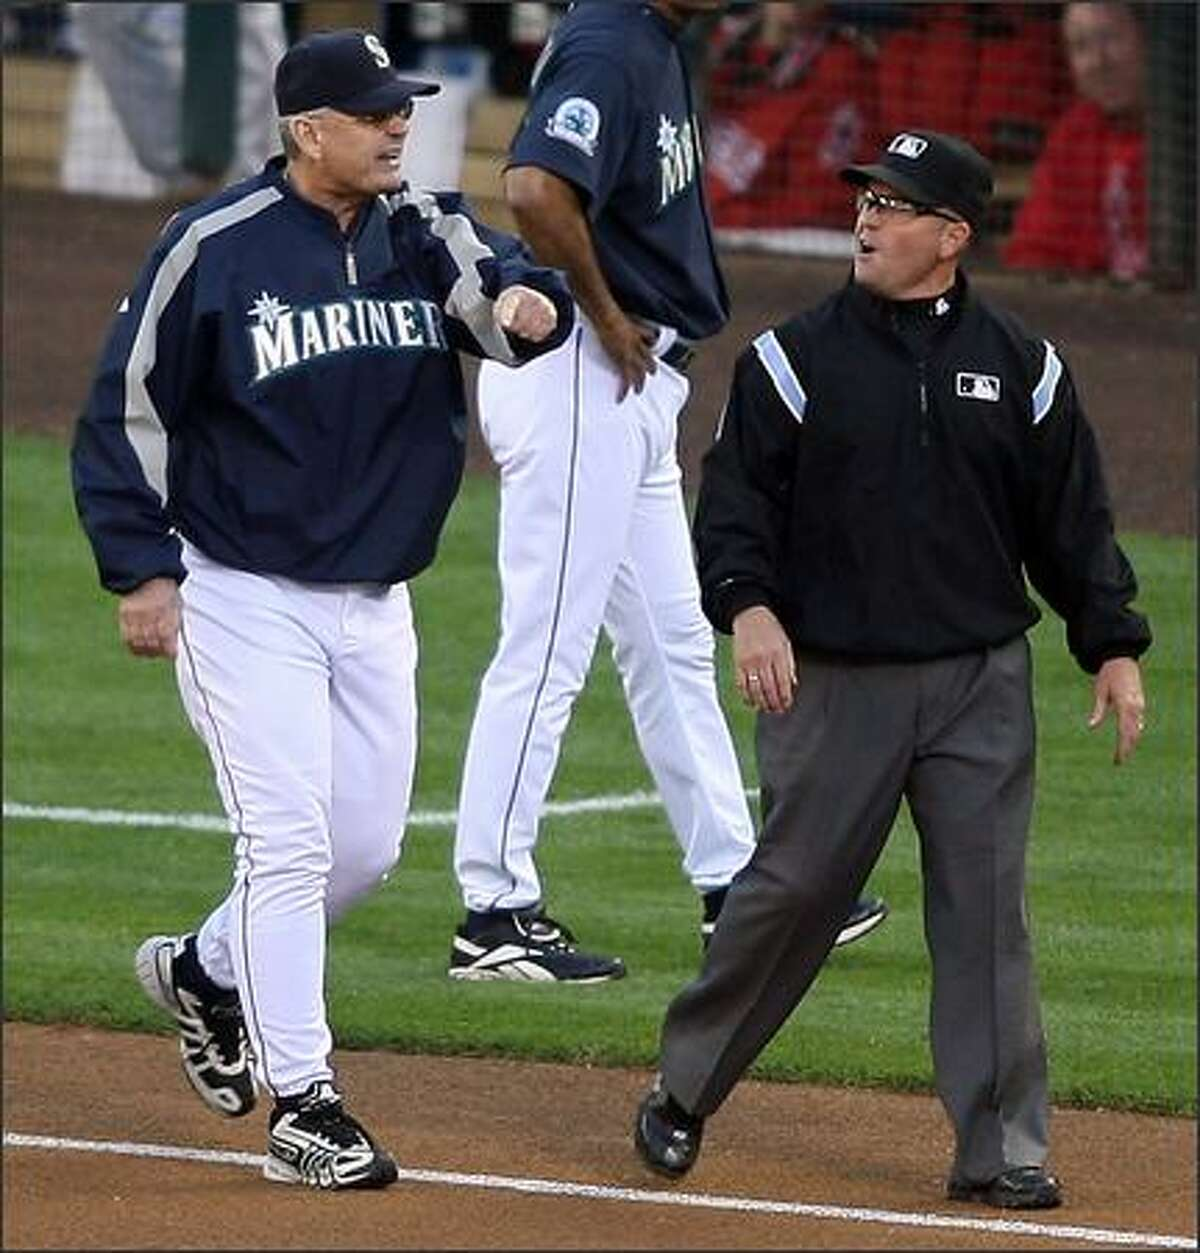 Seattle Mariners manager Mike McLaren found himself ejected after arguing a check swing call with third base umpire Jerry Meals as the Mariners played the Los Angeles Angels during first inning action at Safeco Field in Seattle, Wash., Monday August 27, 2007.